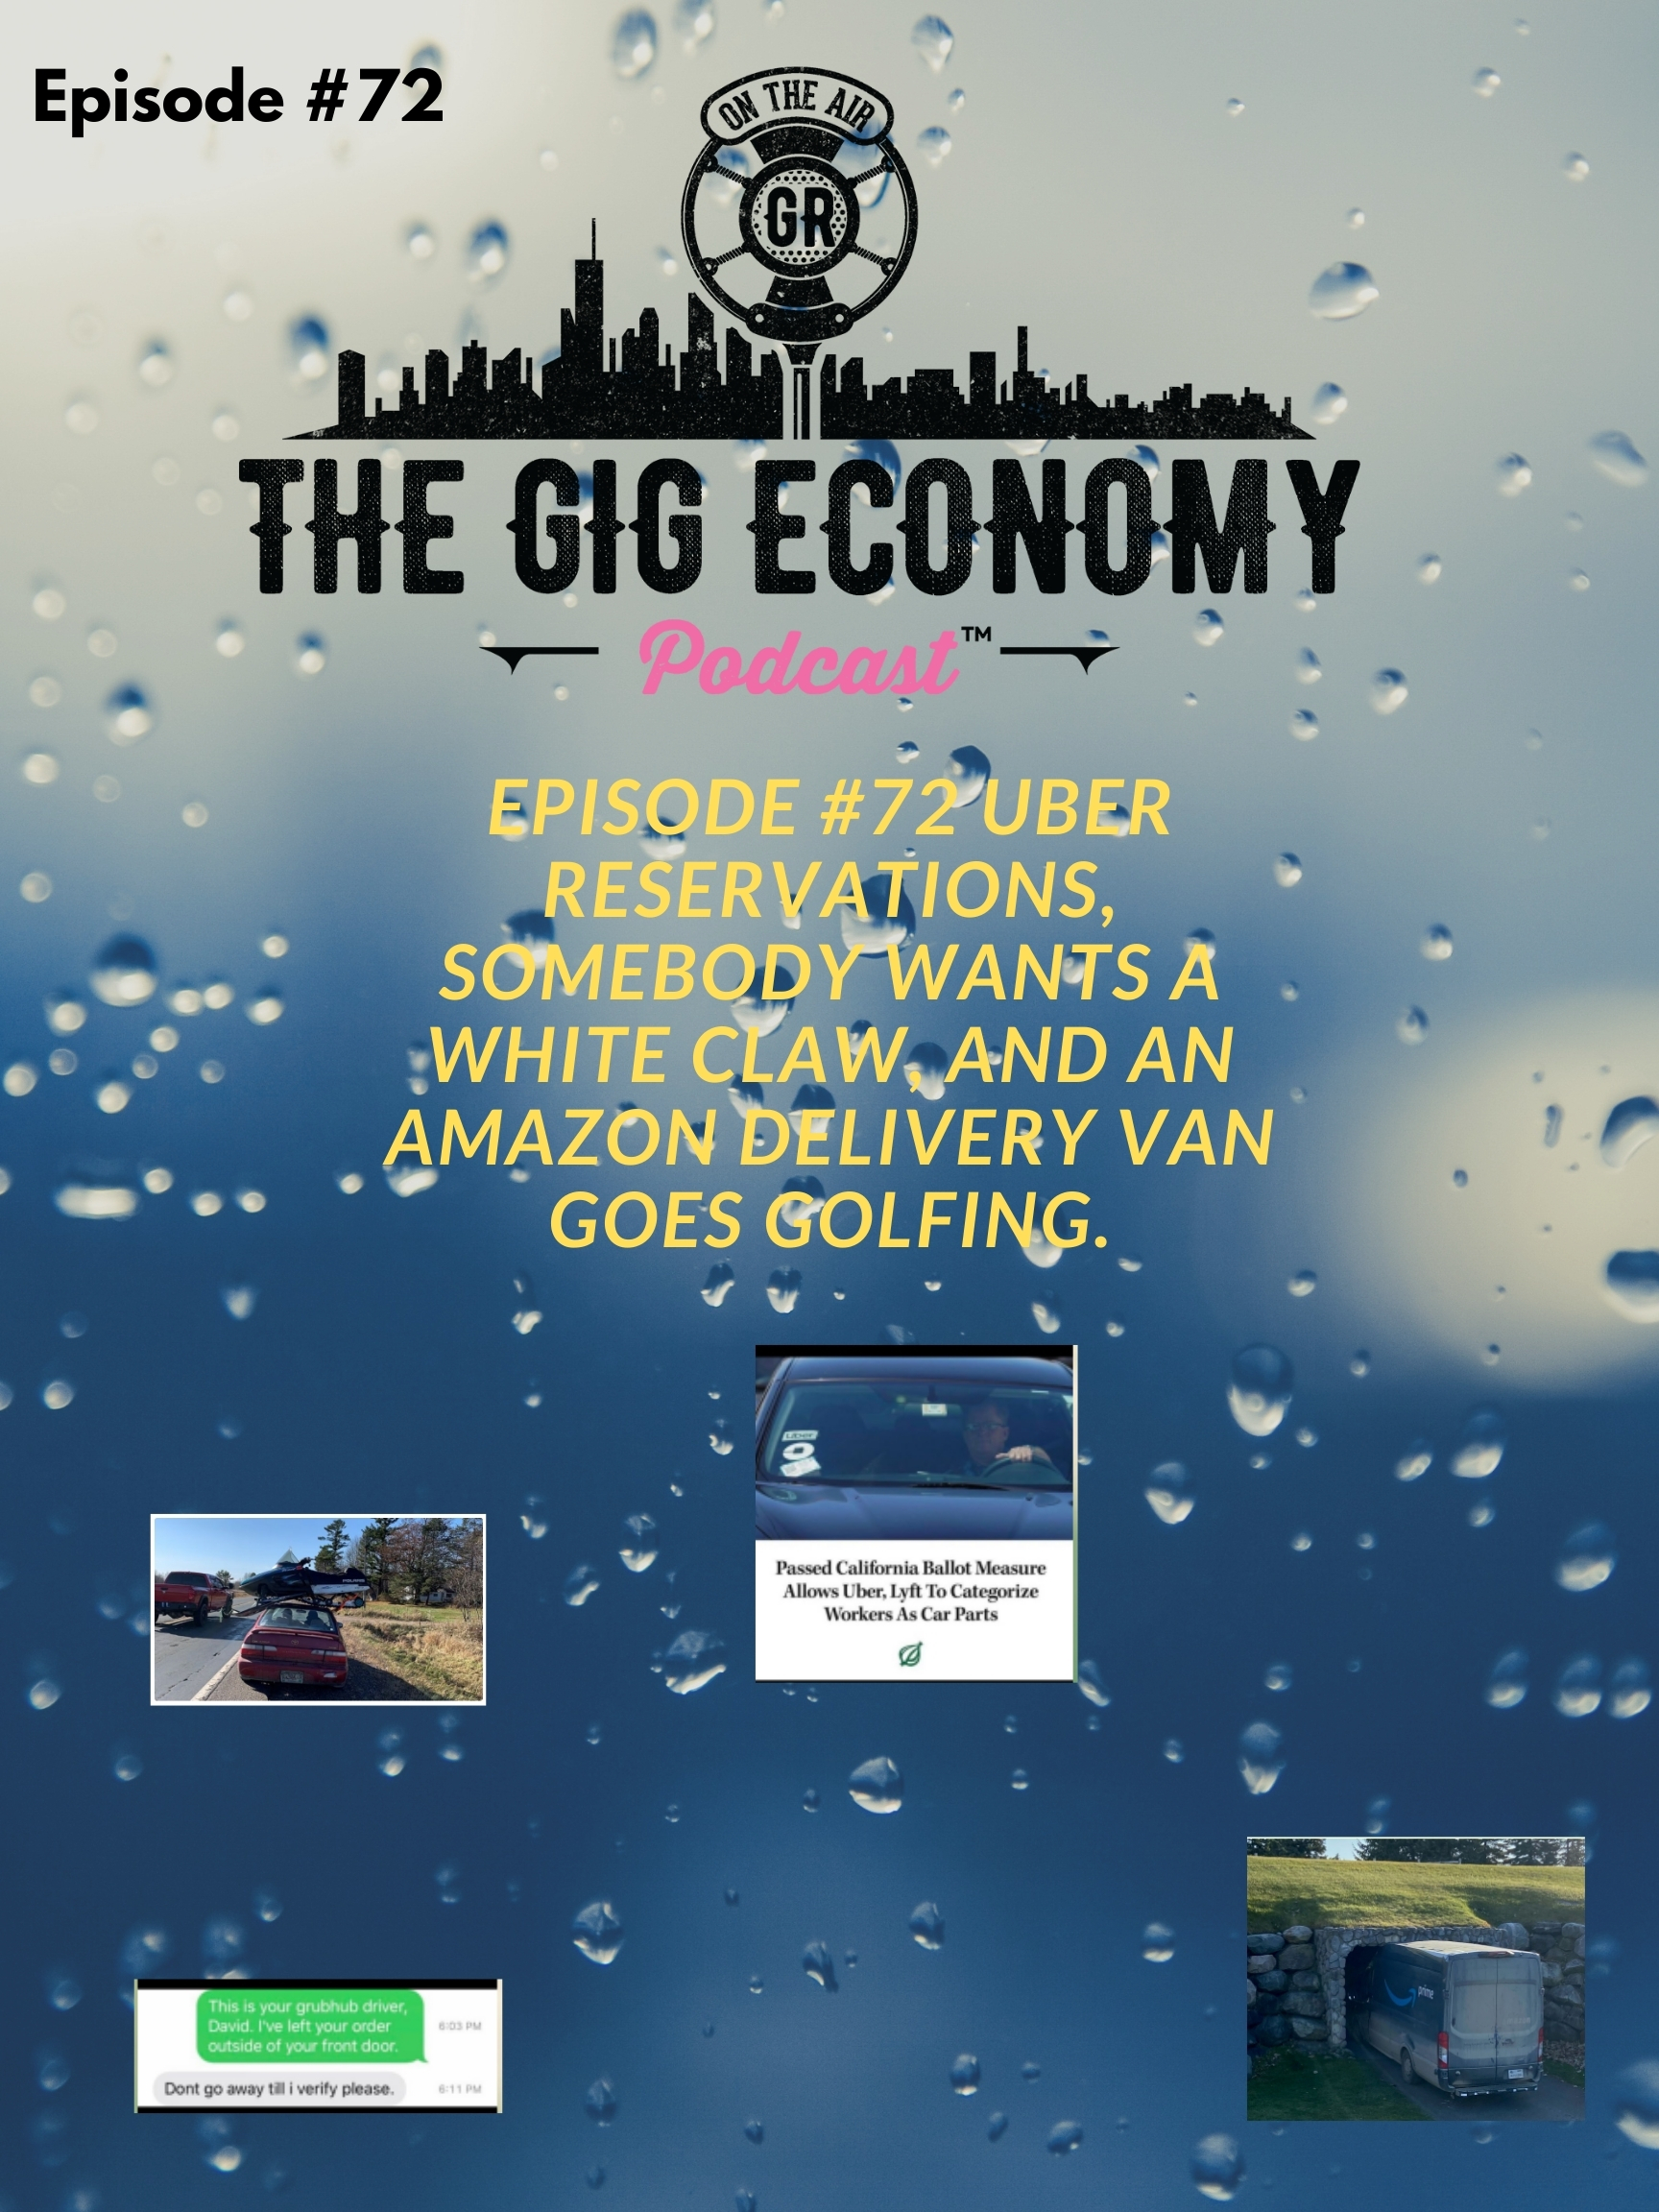 Episode #72 Uber reservations, somebody wants a white claw, and an Amazon delivery van goes golfing